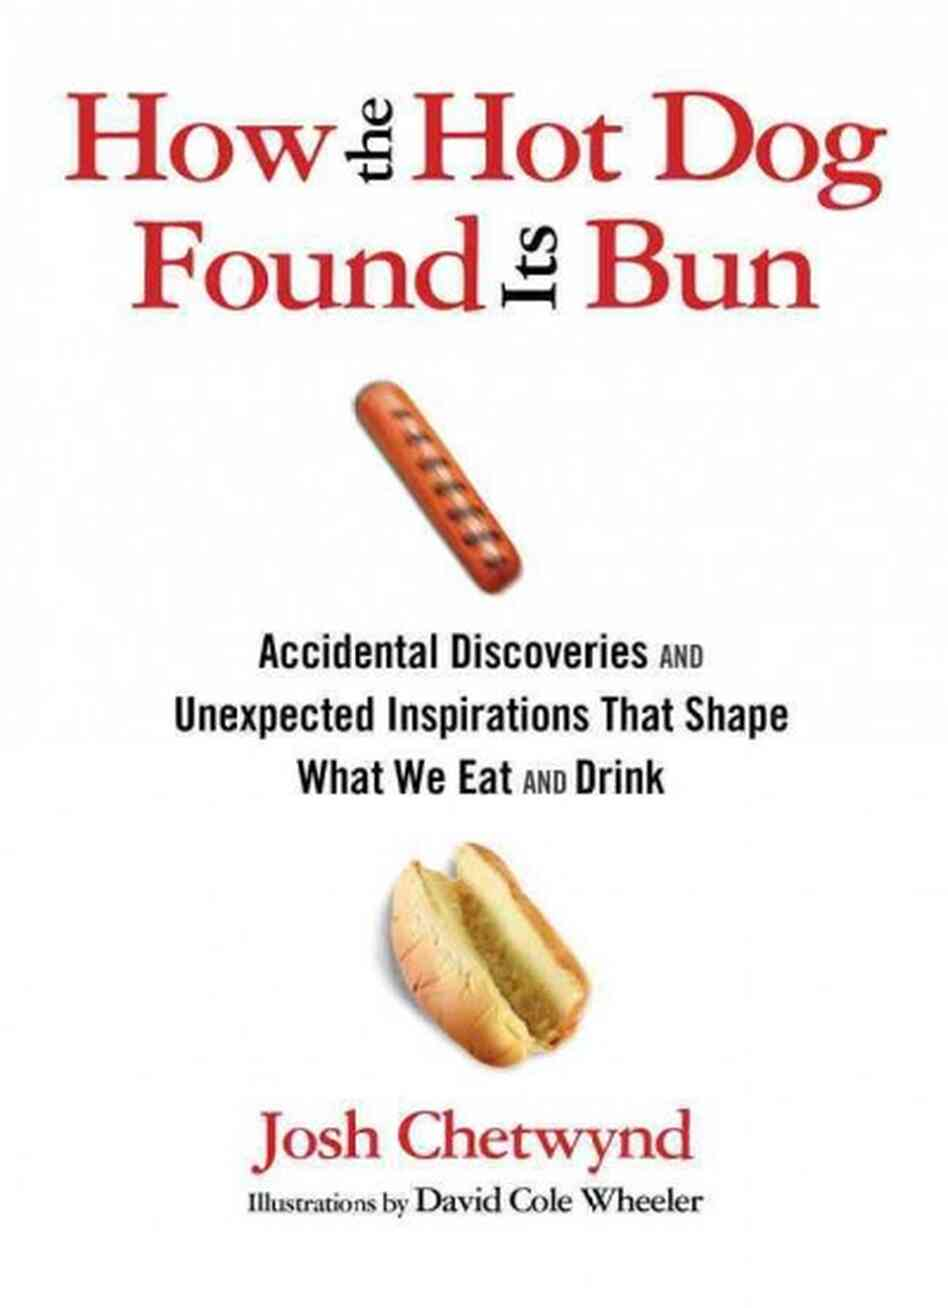 How the Hot Dog Found Its Bun